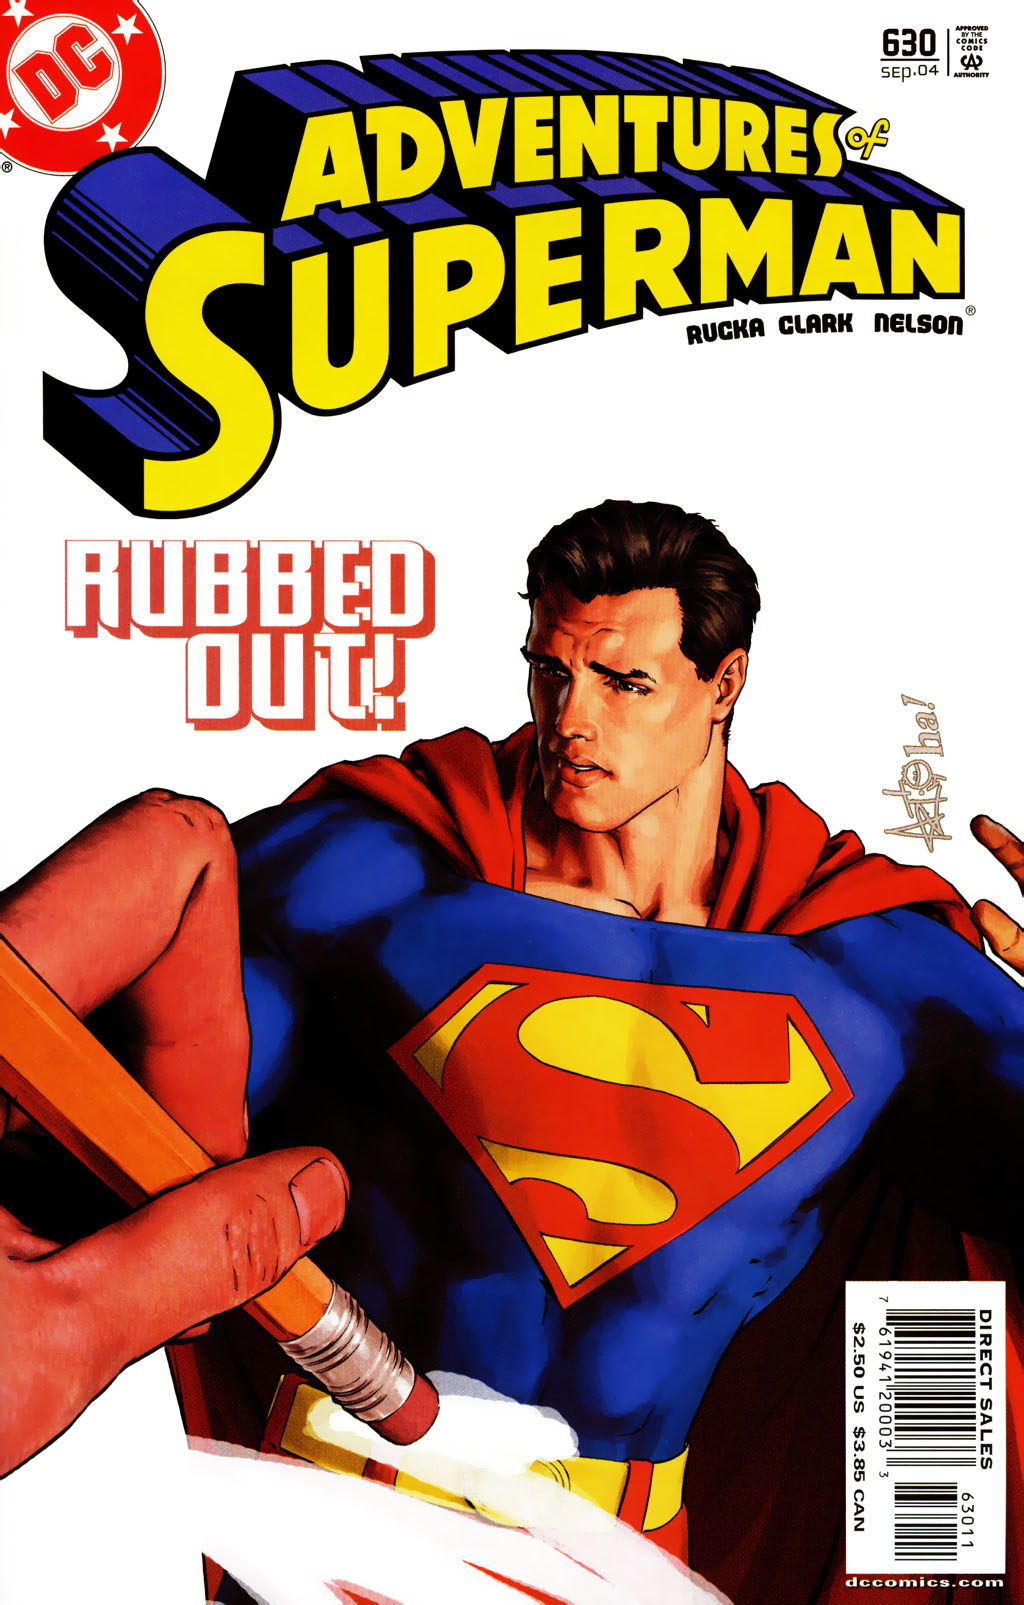 Read online Adventures of Superman (1987) comic -  Issue #630 - 1